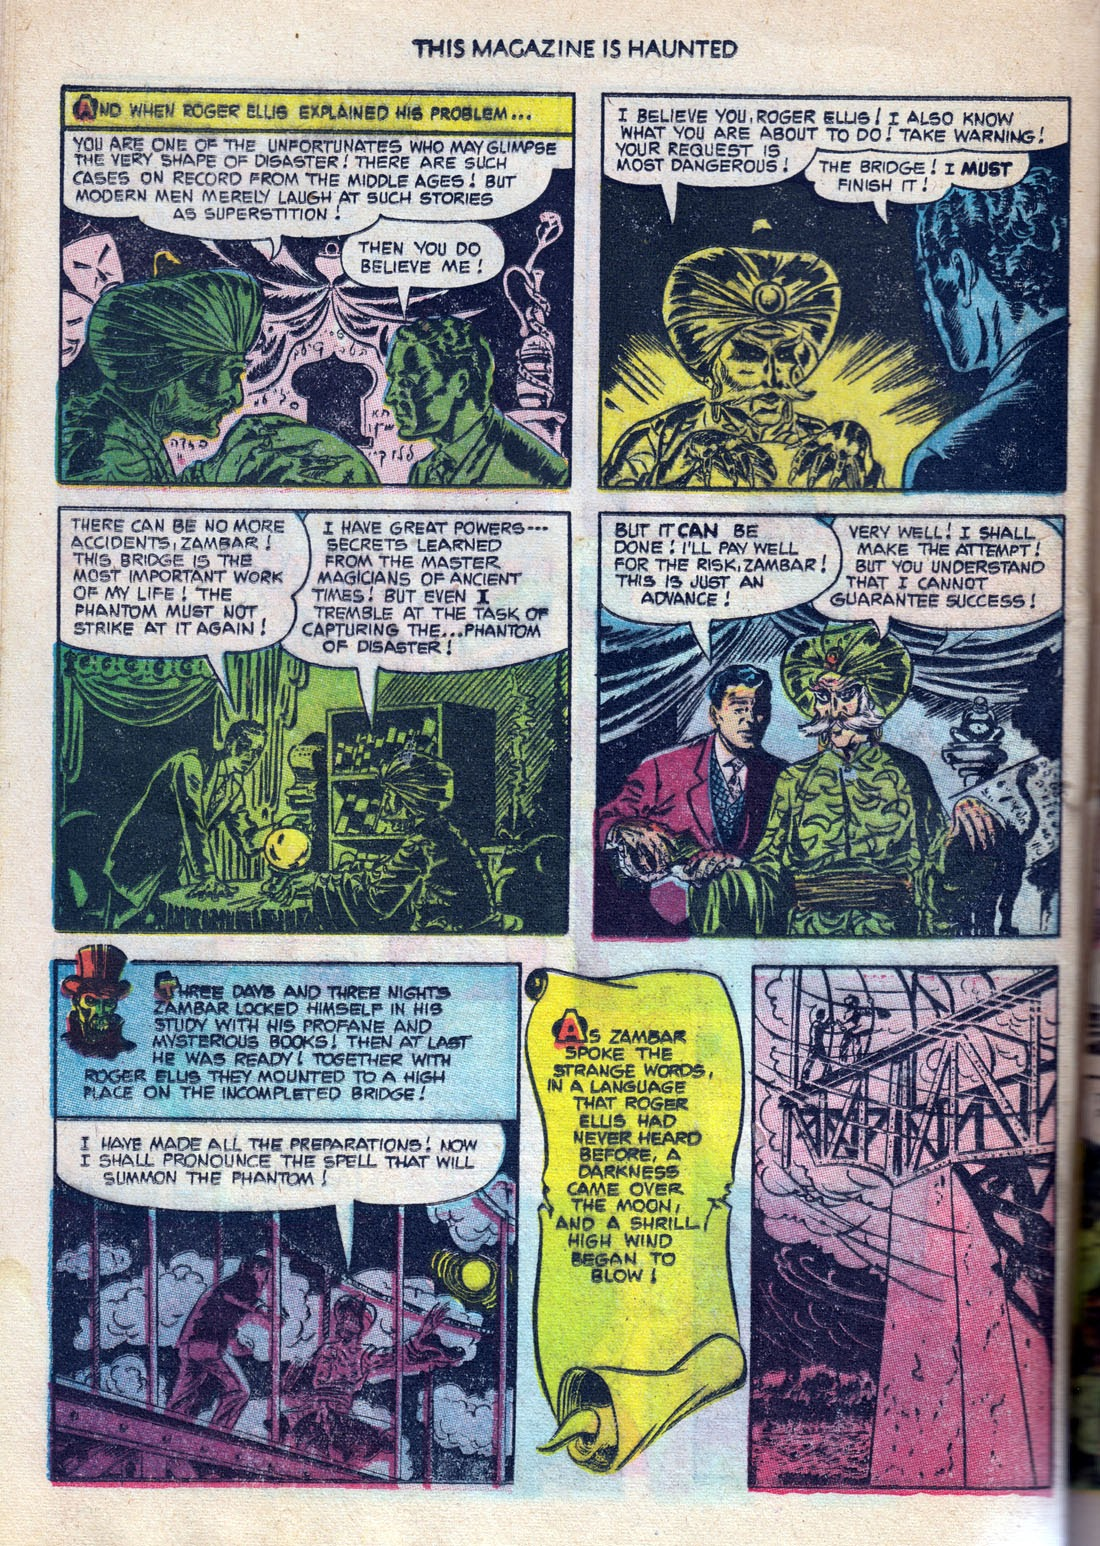 Read online This Magazine Is Haunted comic -  Issue #10 - 24